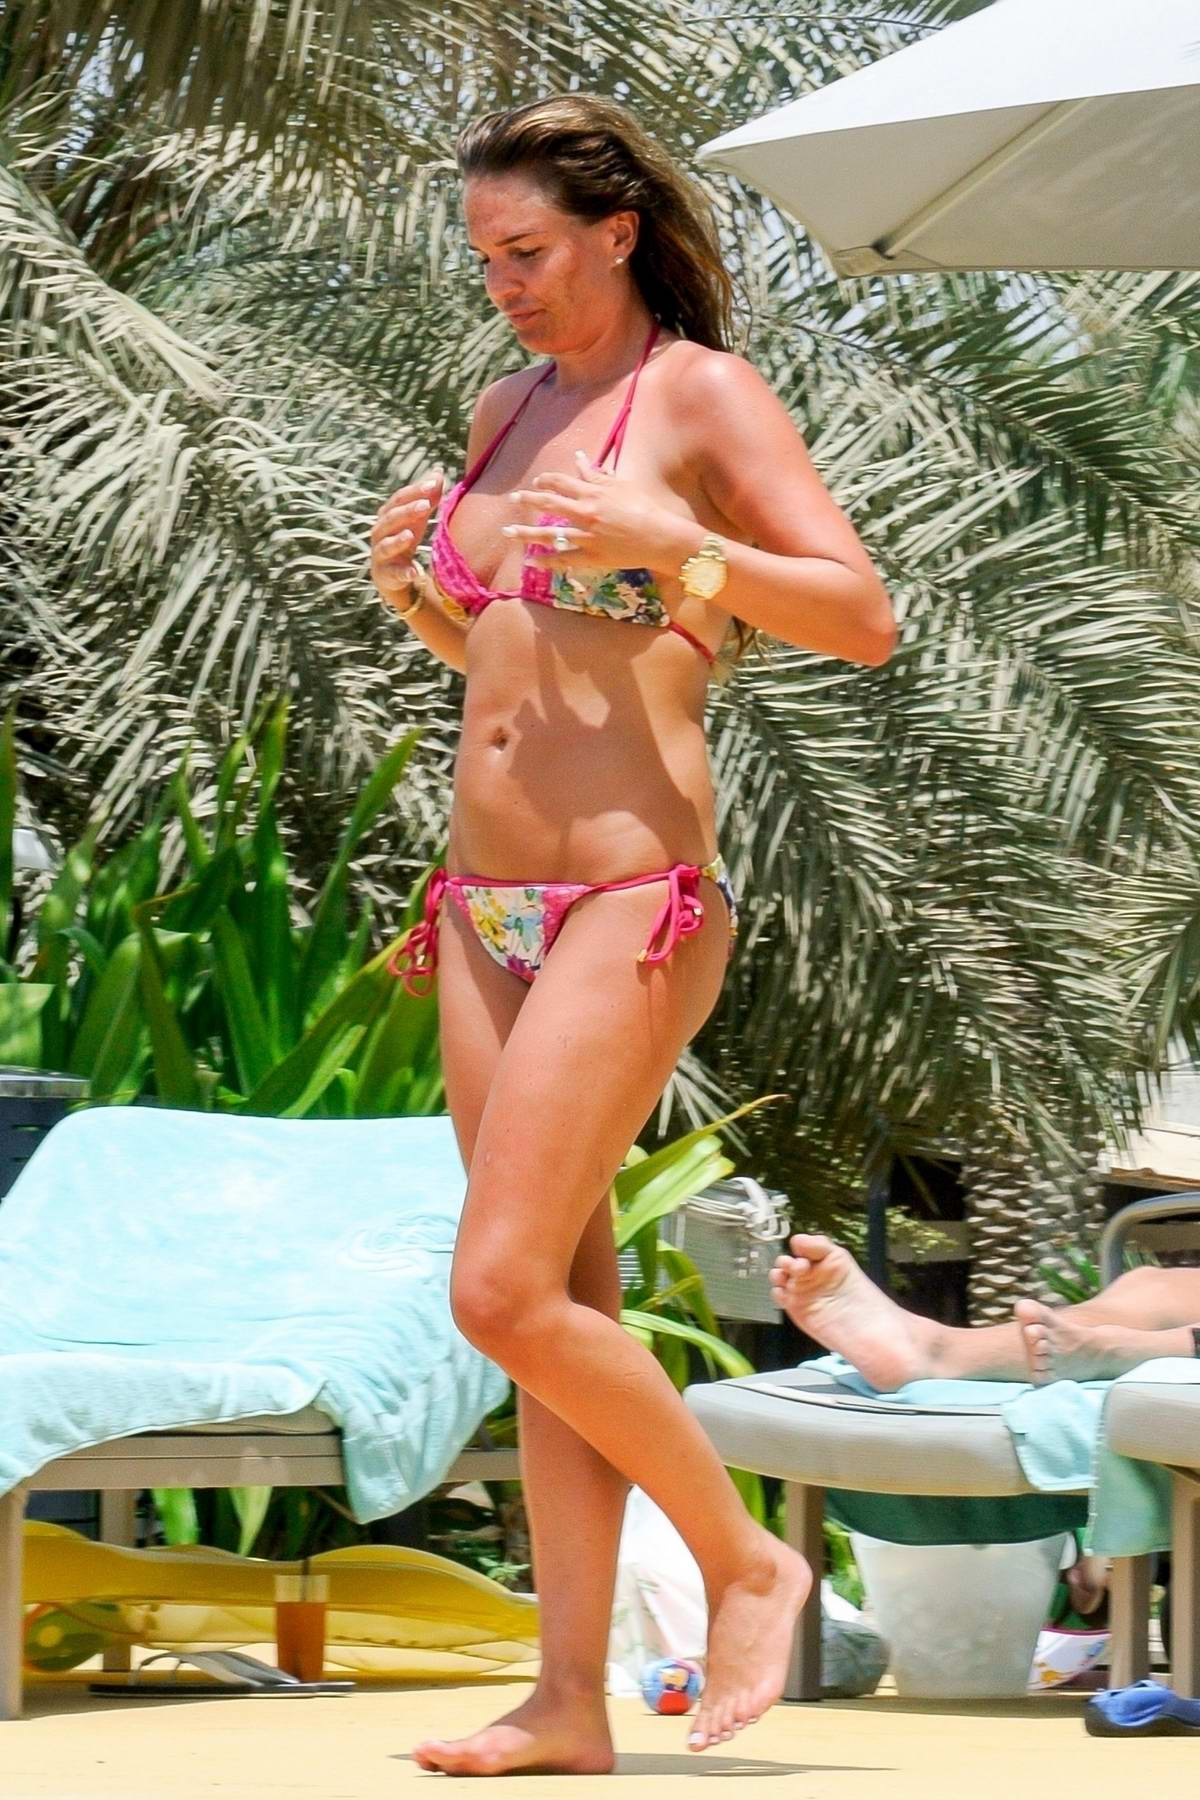 Danielle Lloyd spotted in a floral patterned bikini while relaxing by the pool in Dubai